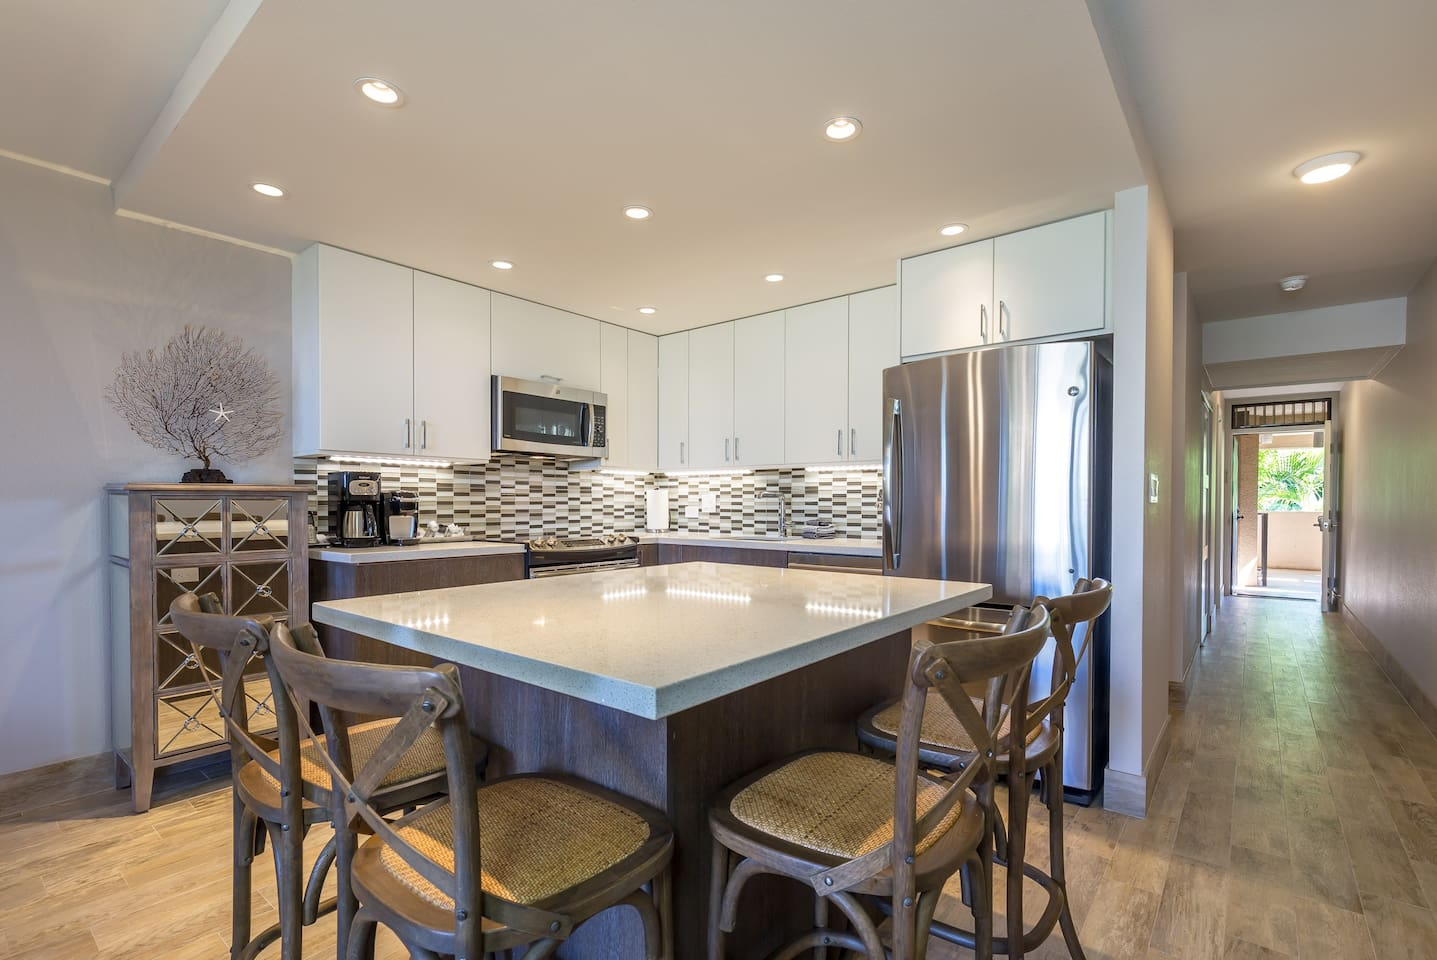 Exquisite Remodel With Brand New Modern Finishes